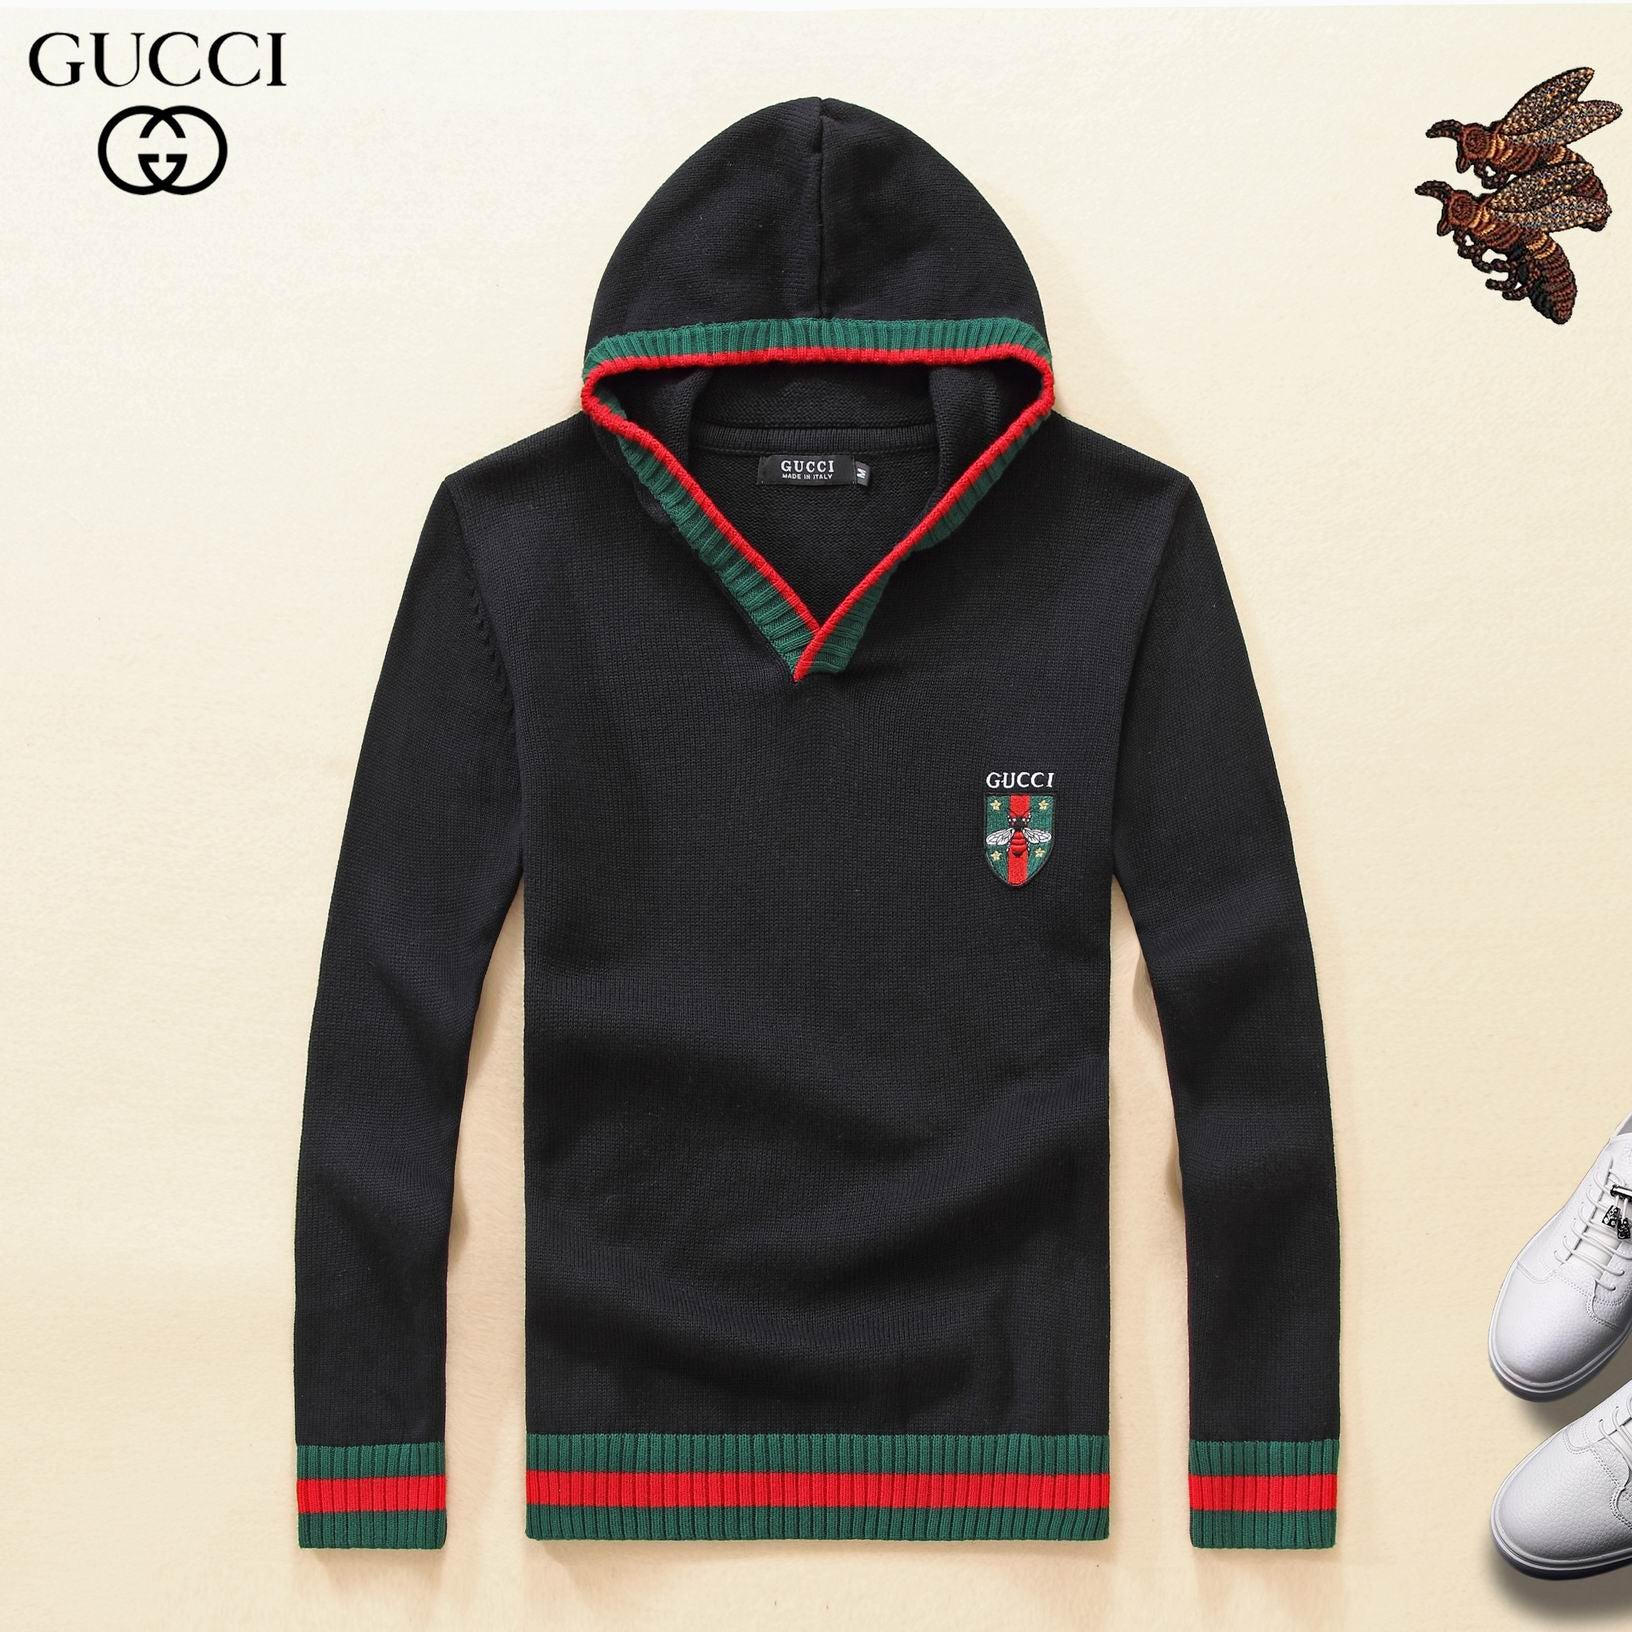 GUCCI HOODIE BLACK KNITTED GREEN AND RED